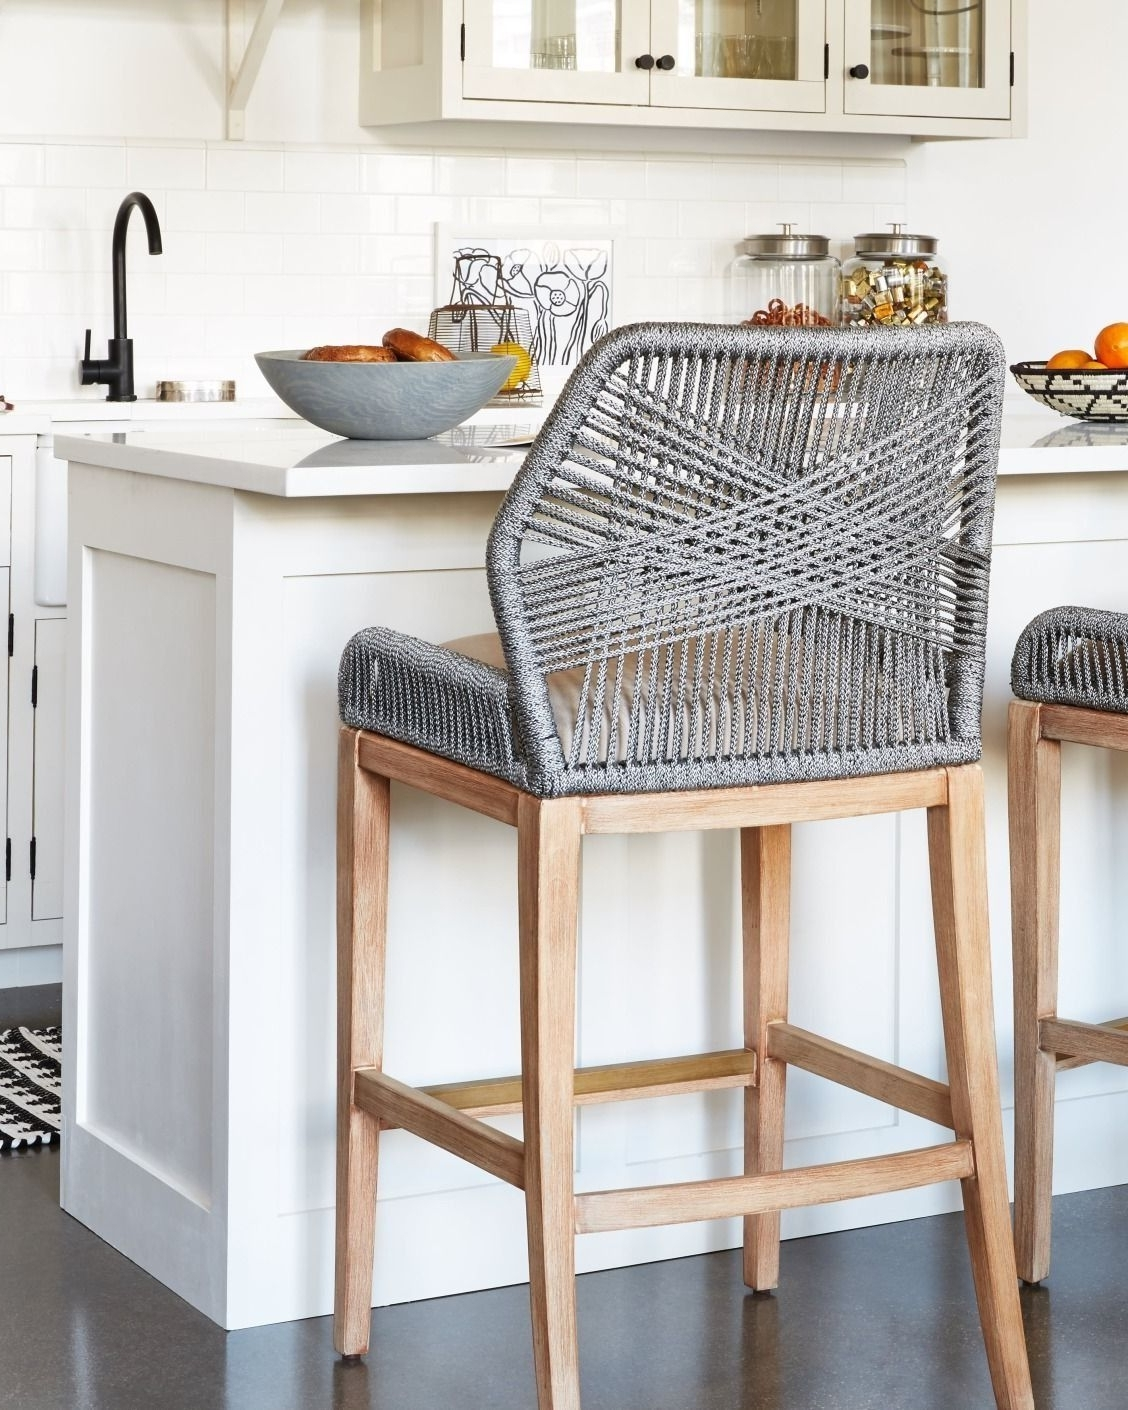 Most Recent These Woven Rope Counter Stools Are Such A Fun, Unexpected Kitchen In Laurent 7 Piece Counter Sets With Wood Counterstools (View 15 of 25)